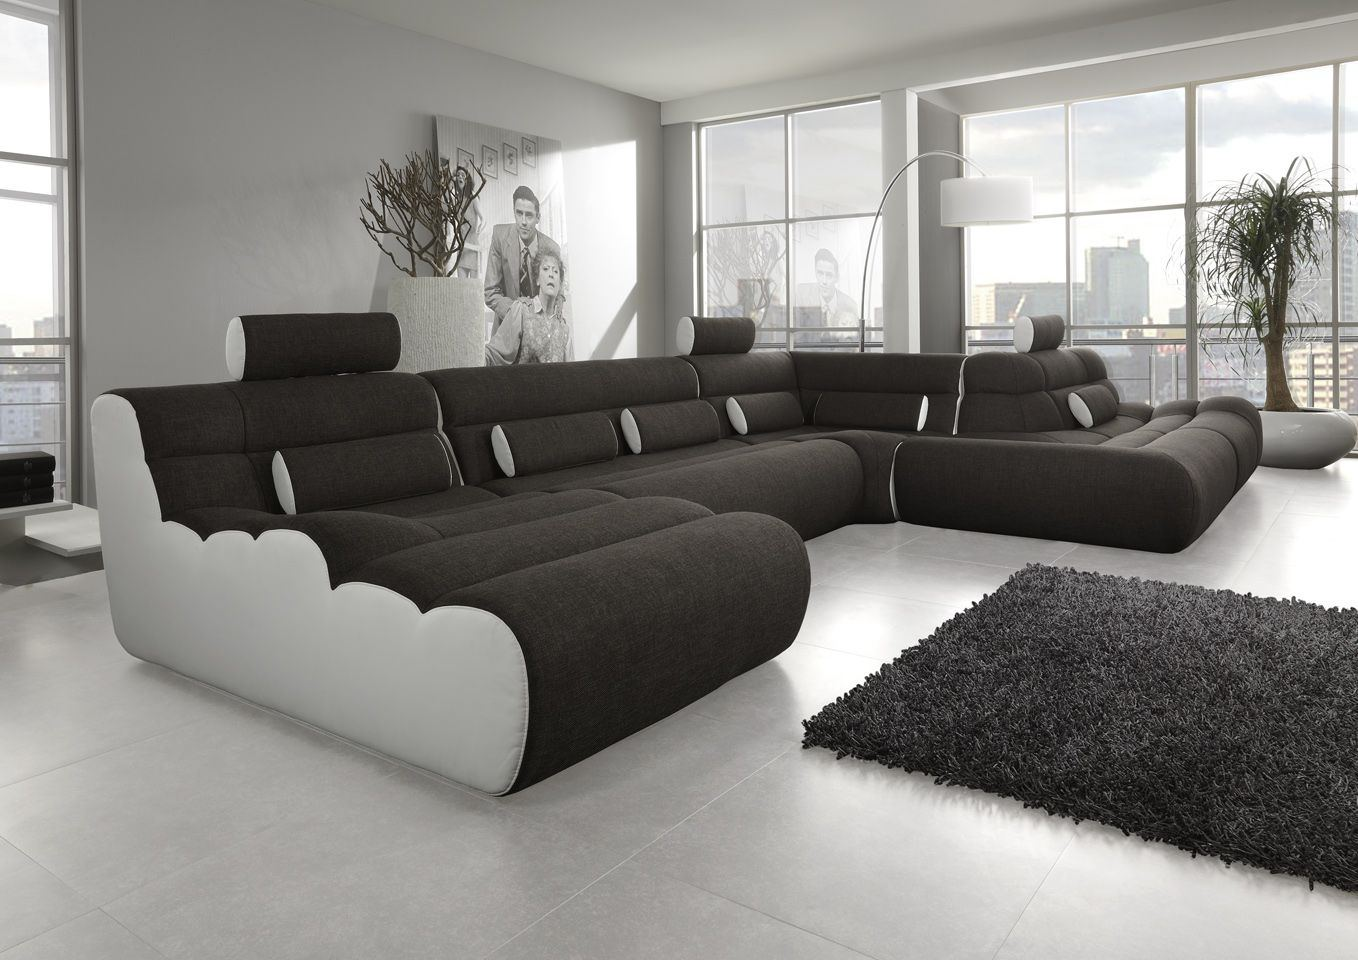 systemsofa ecksofa elements 9 create your own style. Black Bedroom Furniture Sets. Home Design Ideas